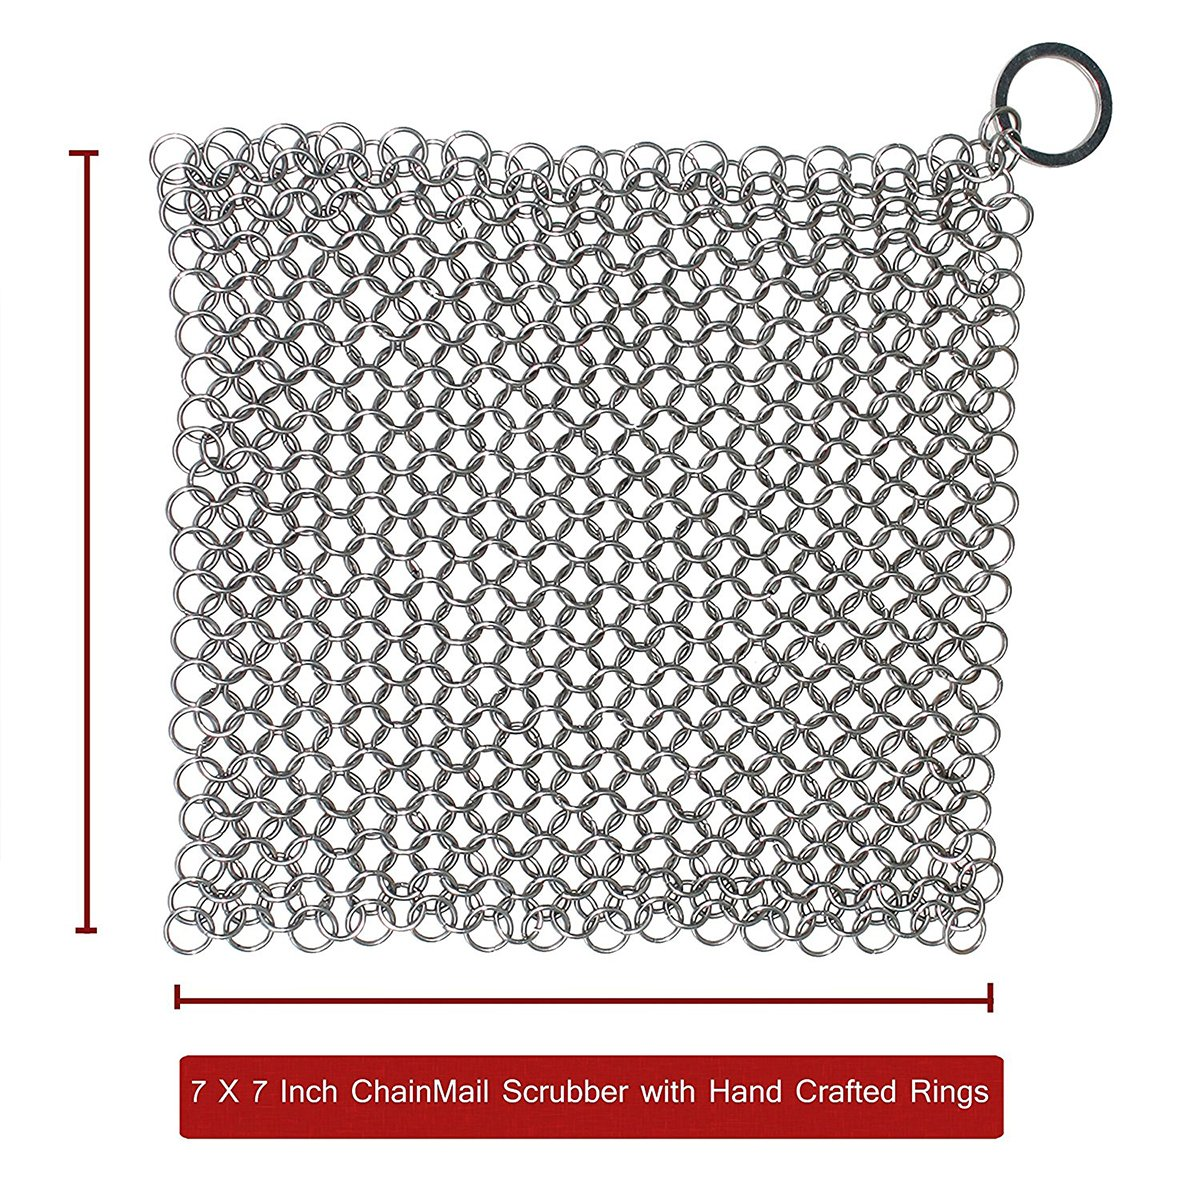 The Best Handcrafted Premium Cast Iron Cookware Cleaner by VMIZIV - 7x7 Inch Food Grade Stainless Steel Chainmail Scrubber